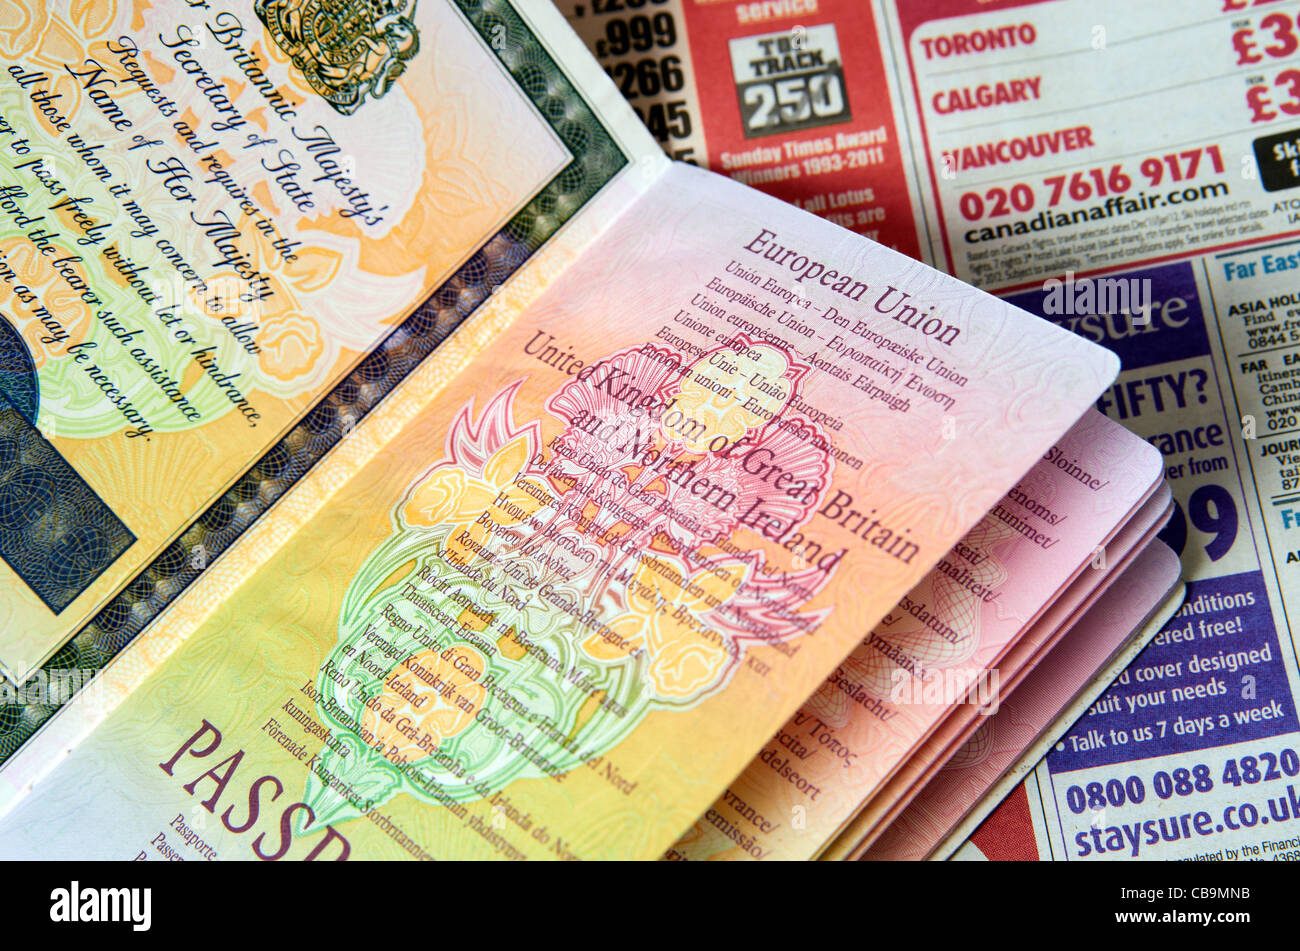 An older style non-biometric British passport showing front page. illustrating travel or holiday planning - Stock Image